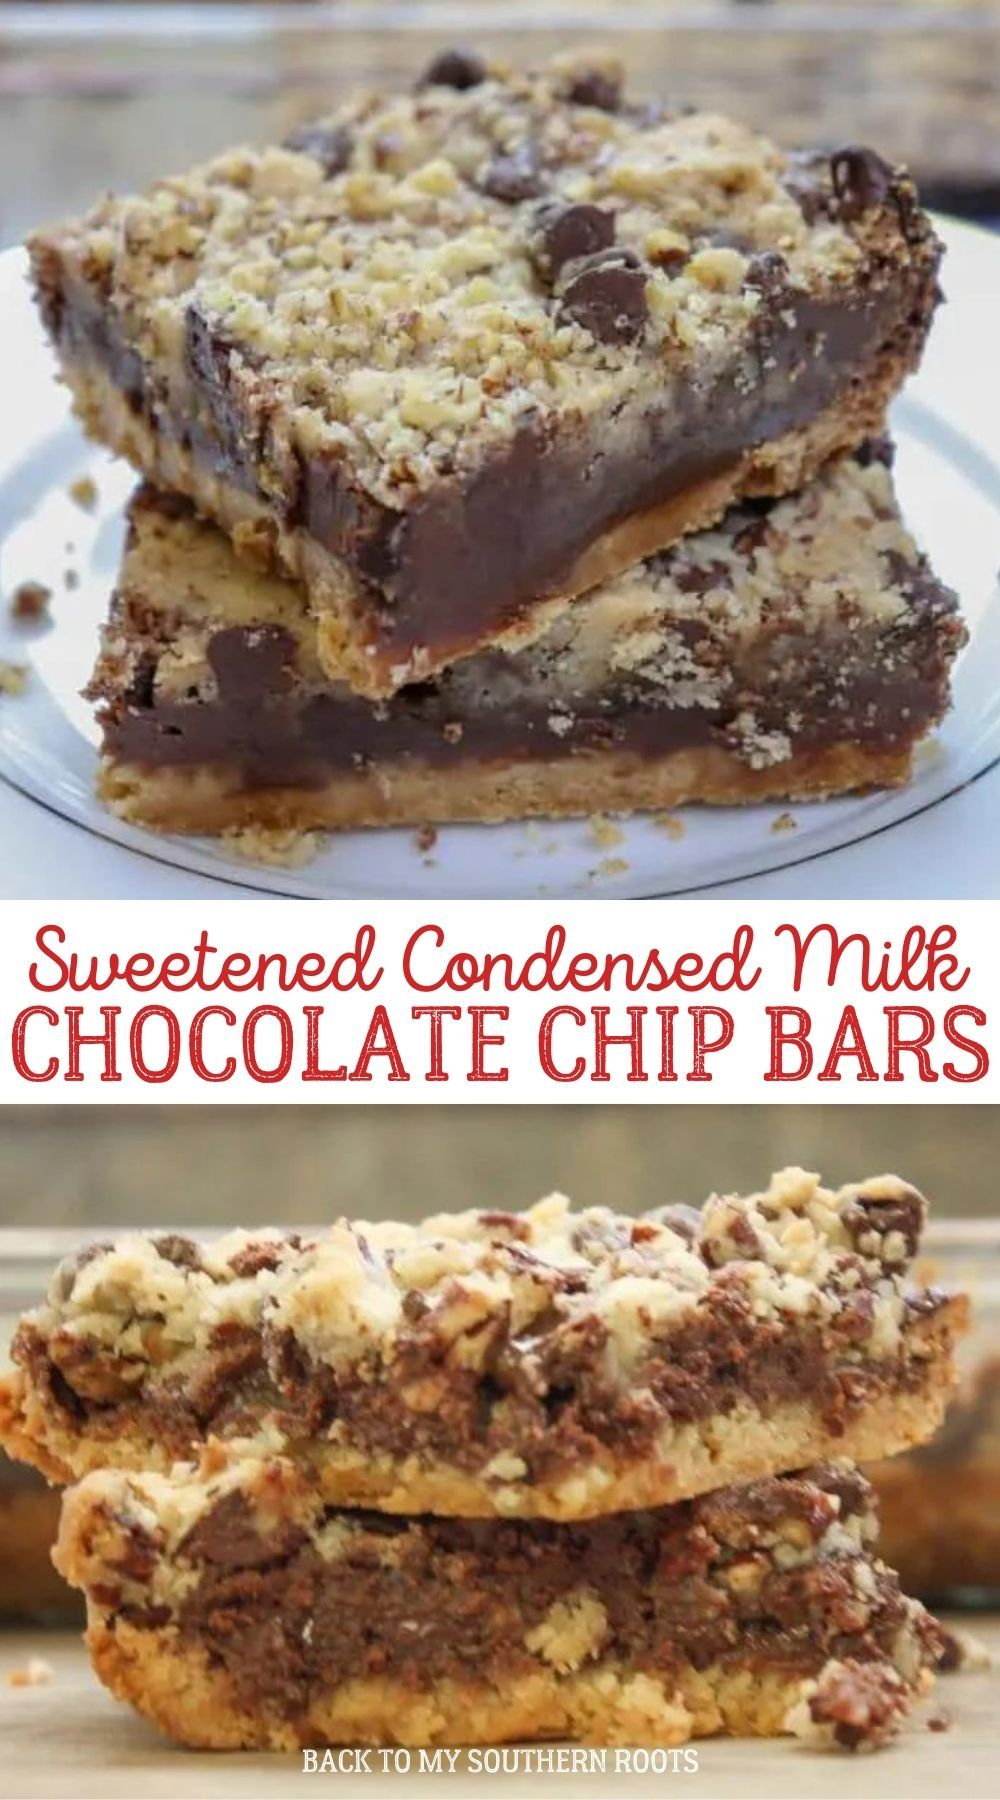 Sweetened Condensed Milk Chocolate Chip Bars Back To My Southern Roots Recipe In 2020 Baked Dessert Recipes Chocolate Chip Bars Cookie Bar Recipes